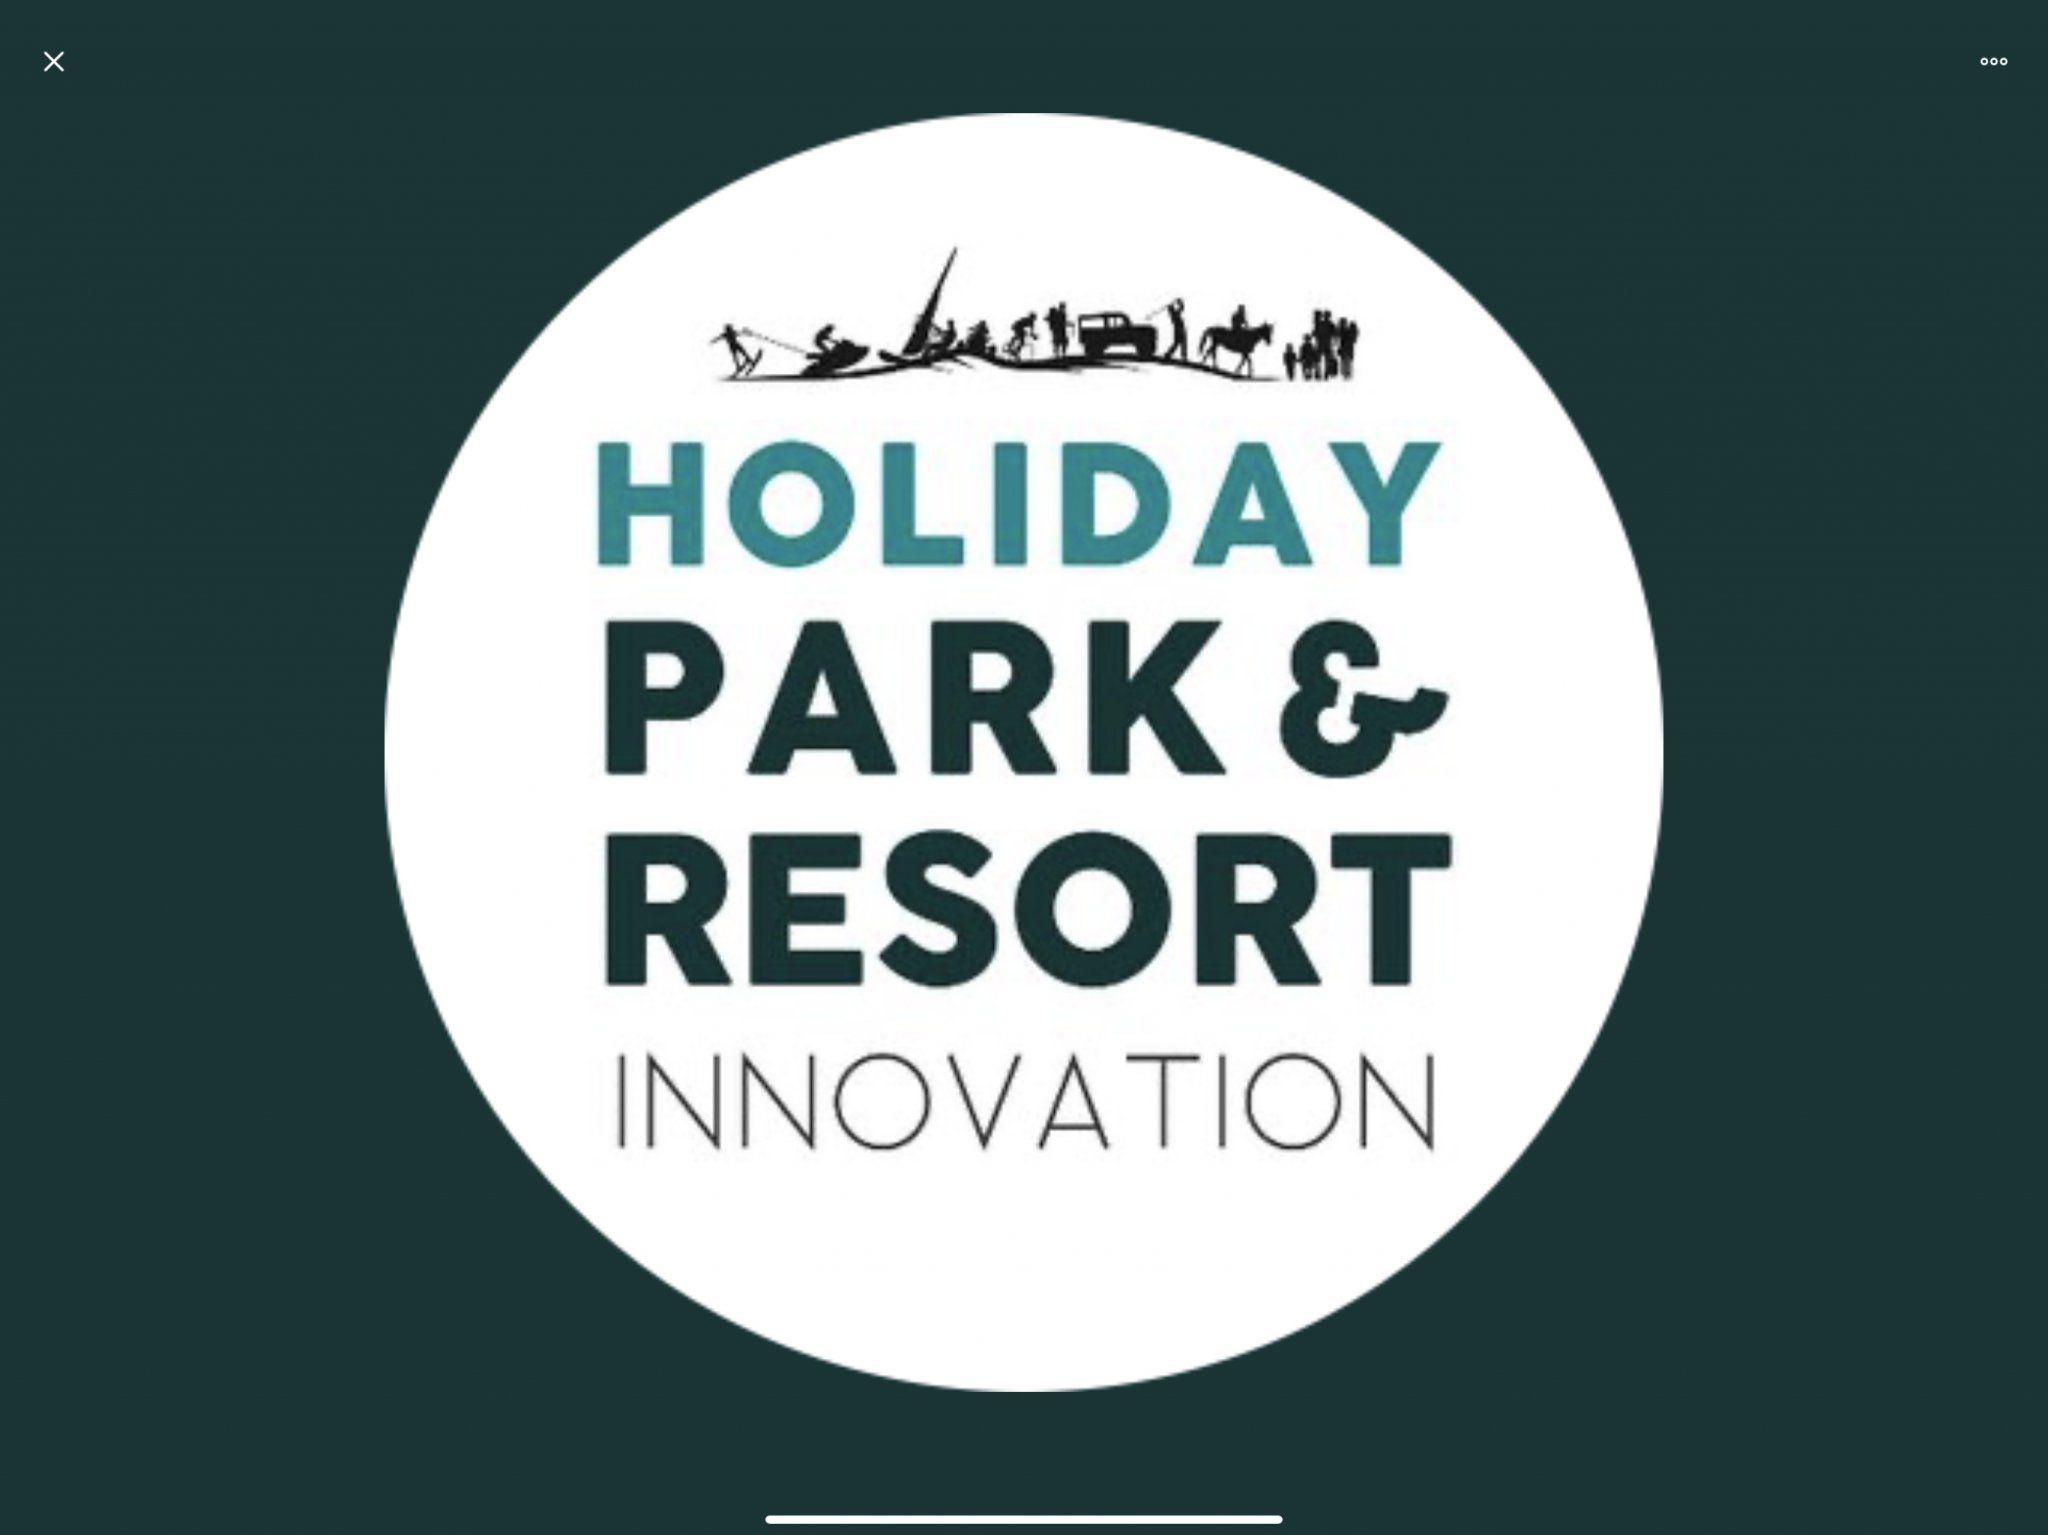 The Holiday Park & Resort Innovation Show 11th and 12th November 2020